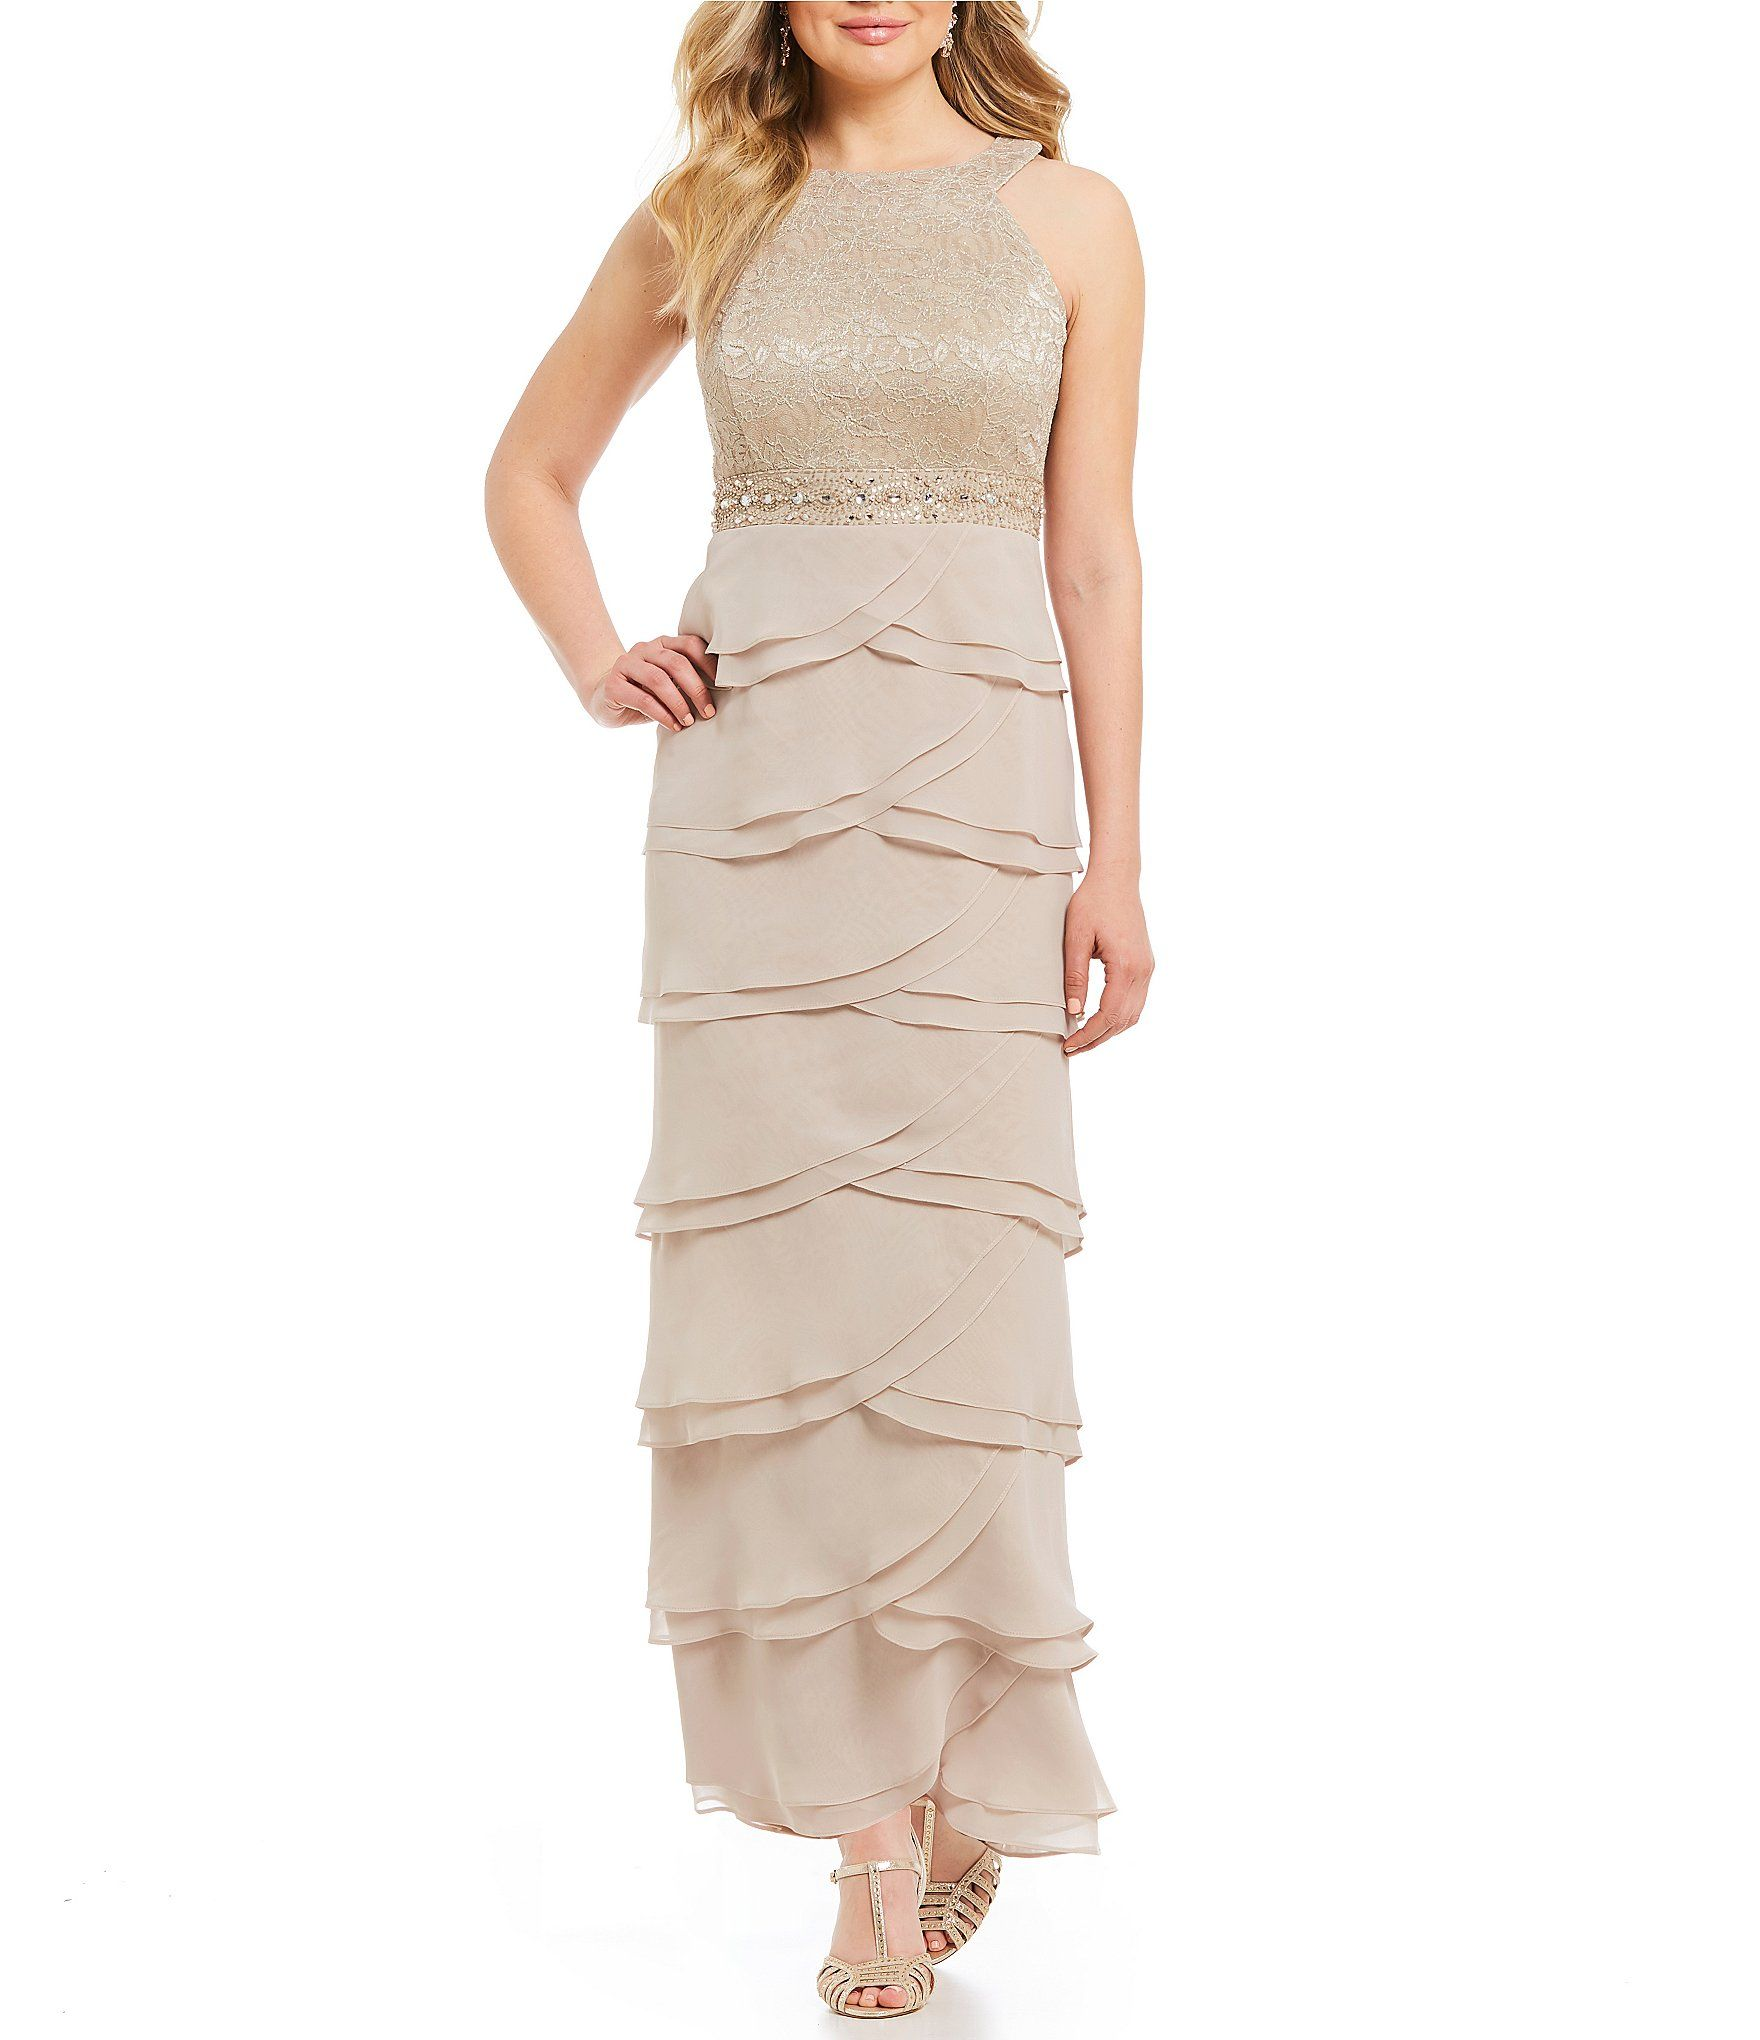 39cbd64b892 Shop for Jessica Howard Petite Layered Skirt Gown at Dillards.com. Visit  Dillards.com to find clothing